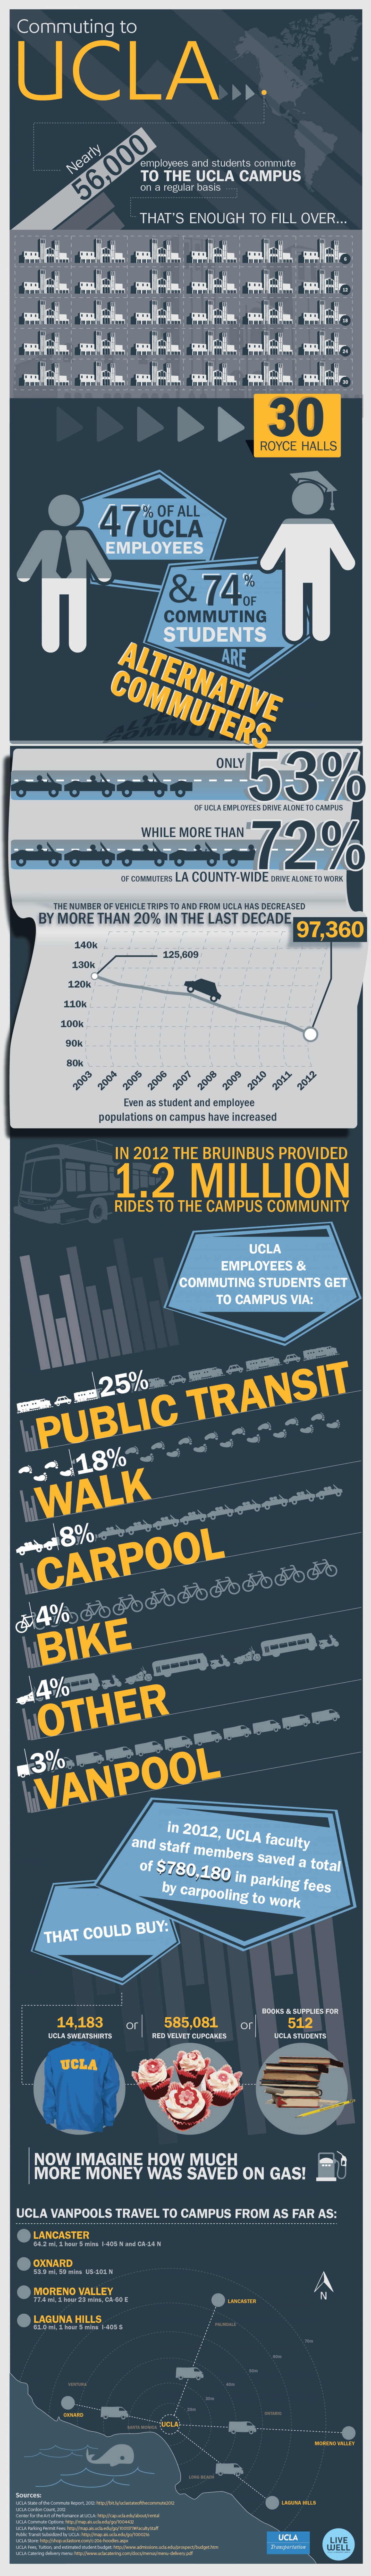 2. Commuting to UCLA